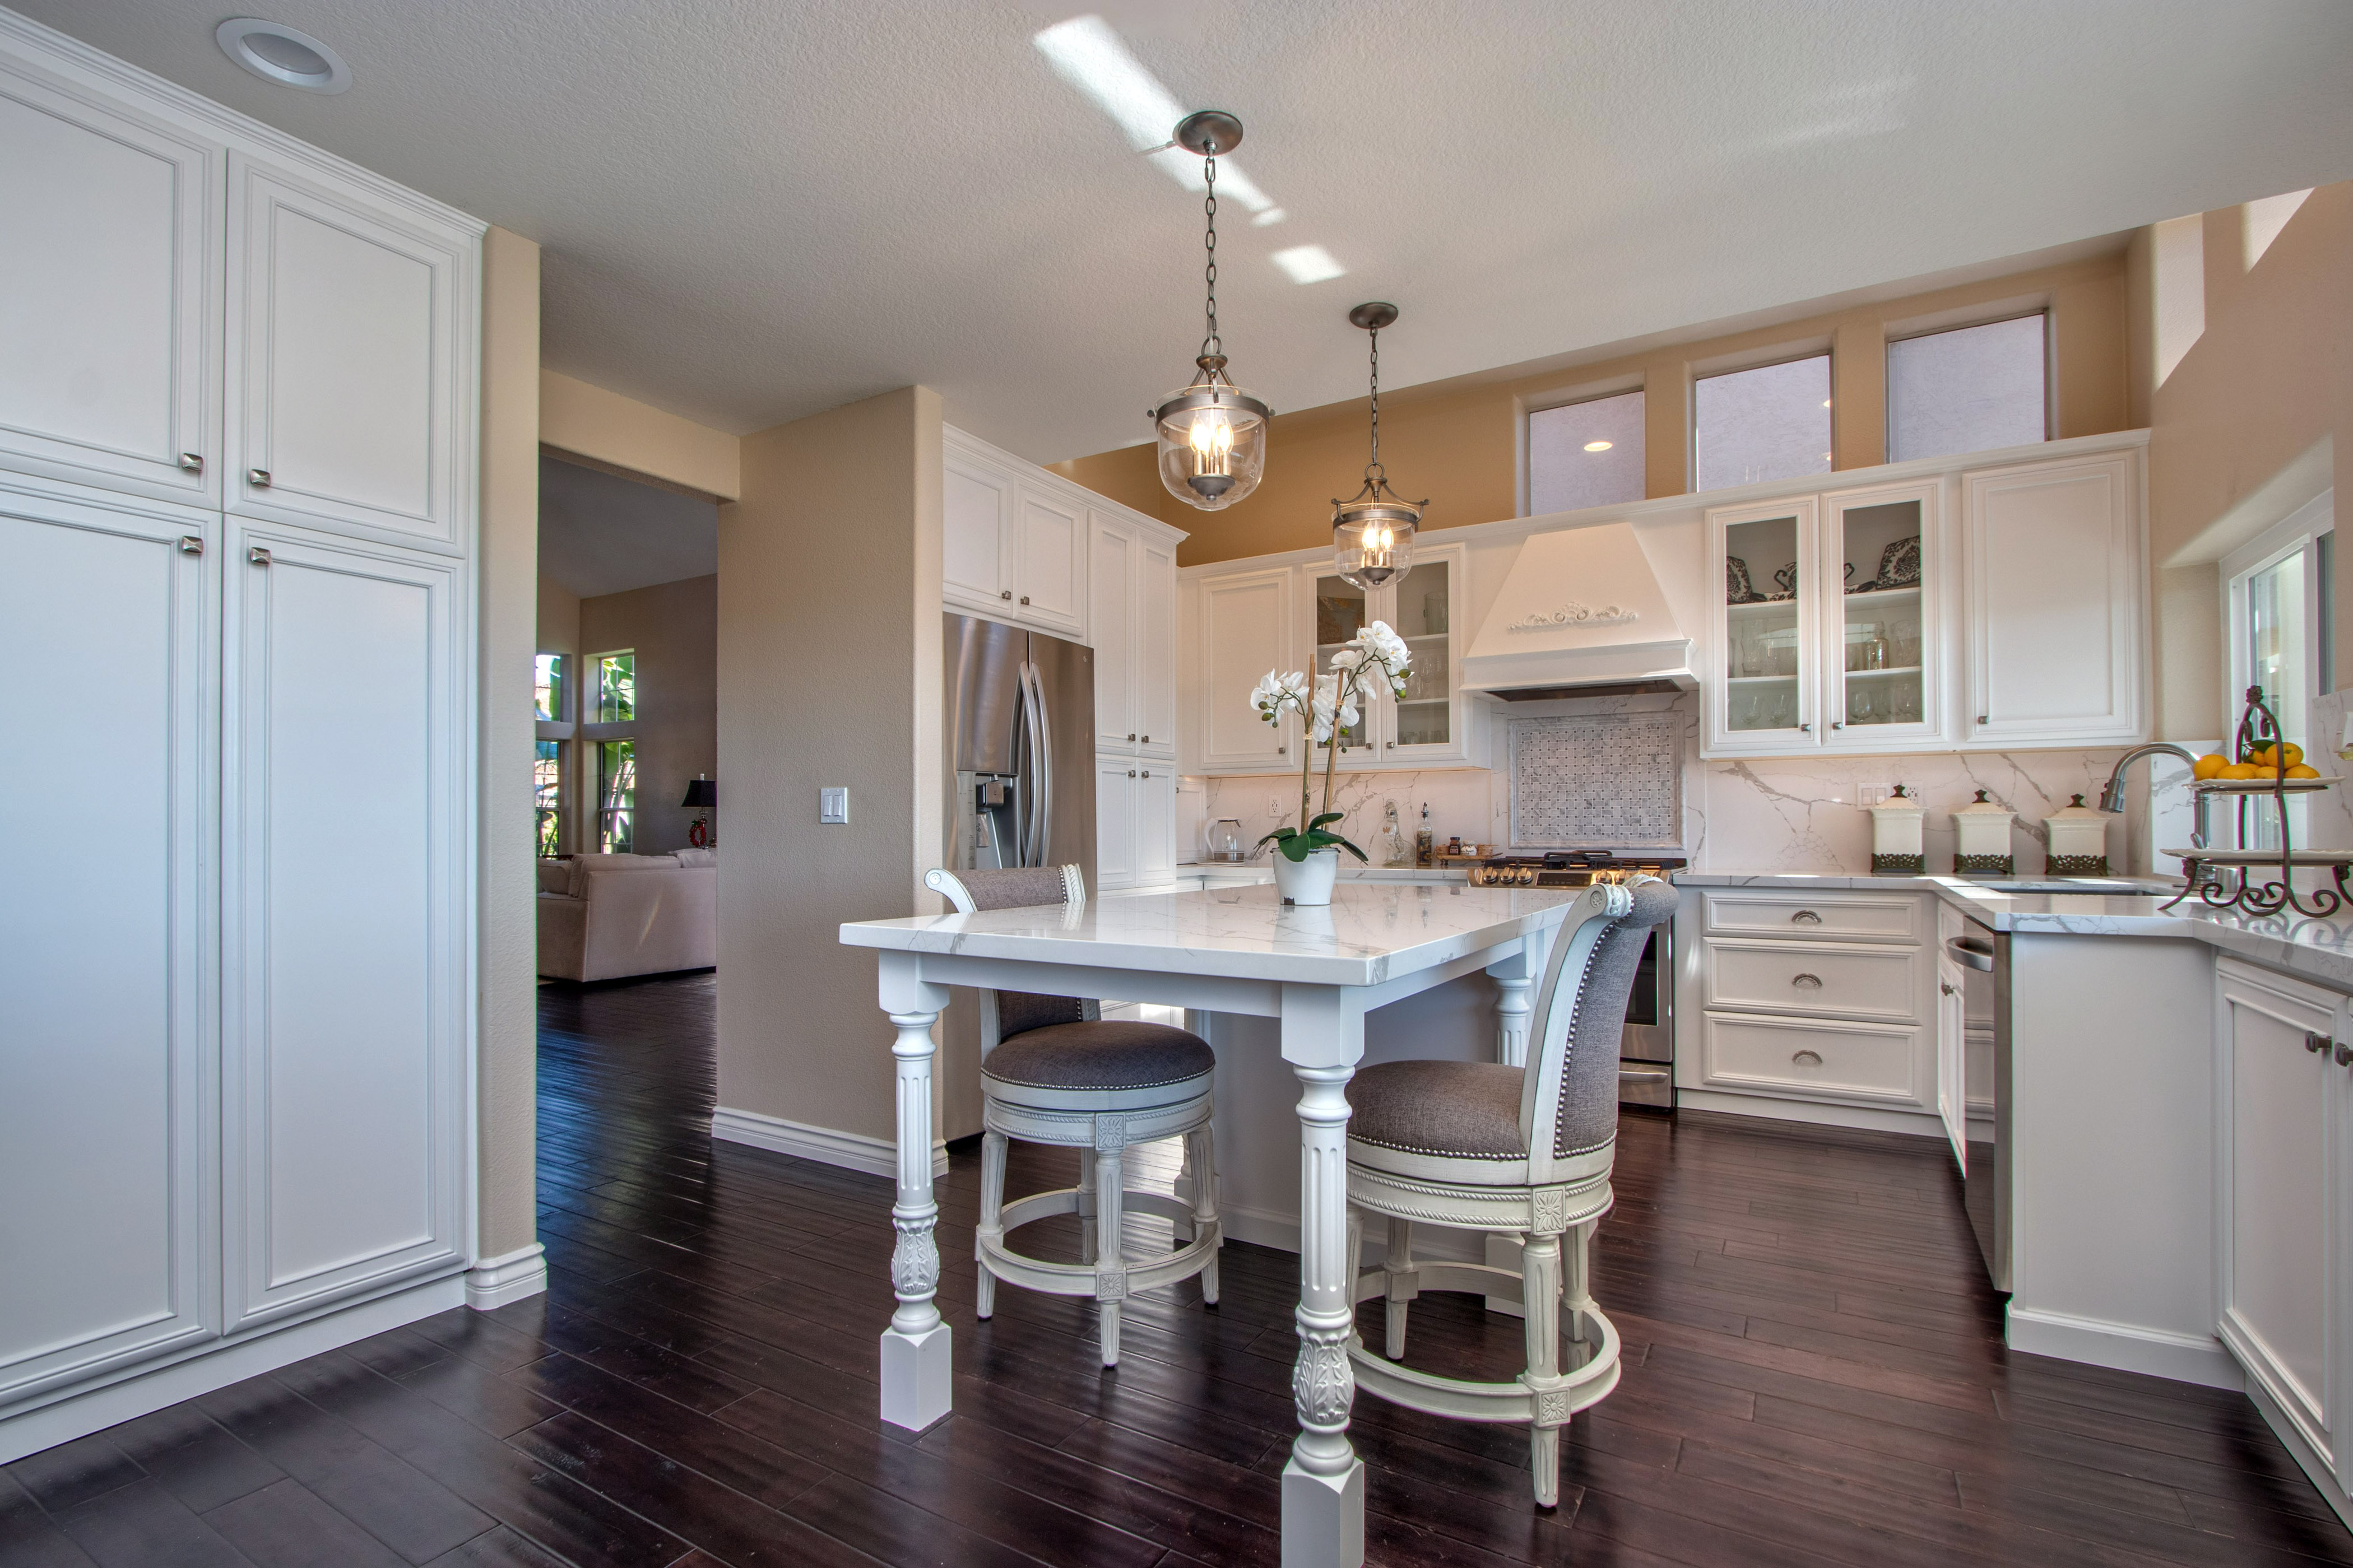 Carlsbad-Cabinet-Refacing-Project-11